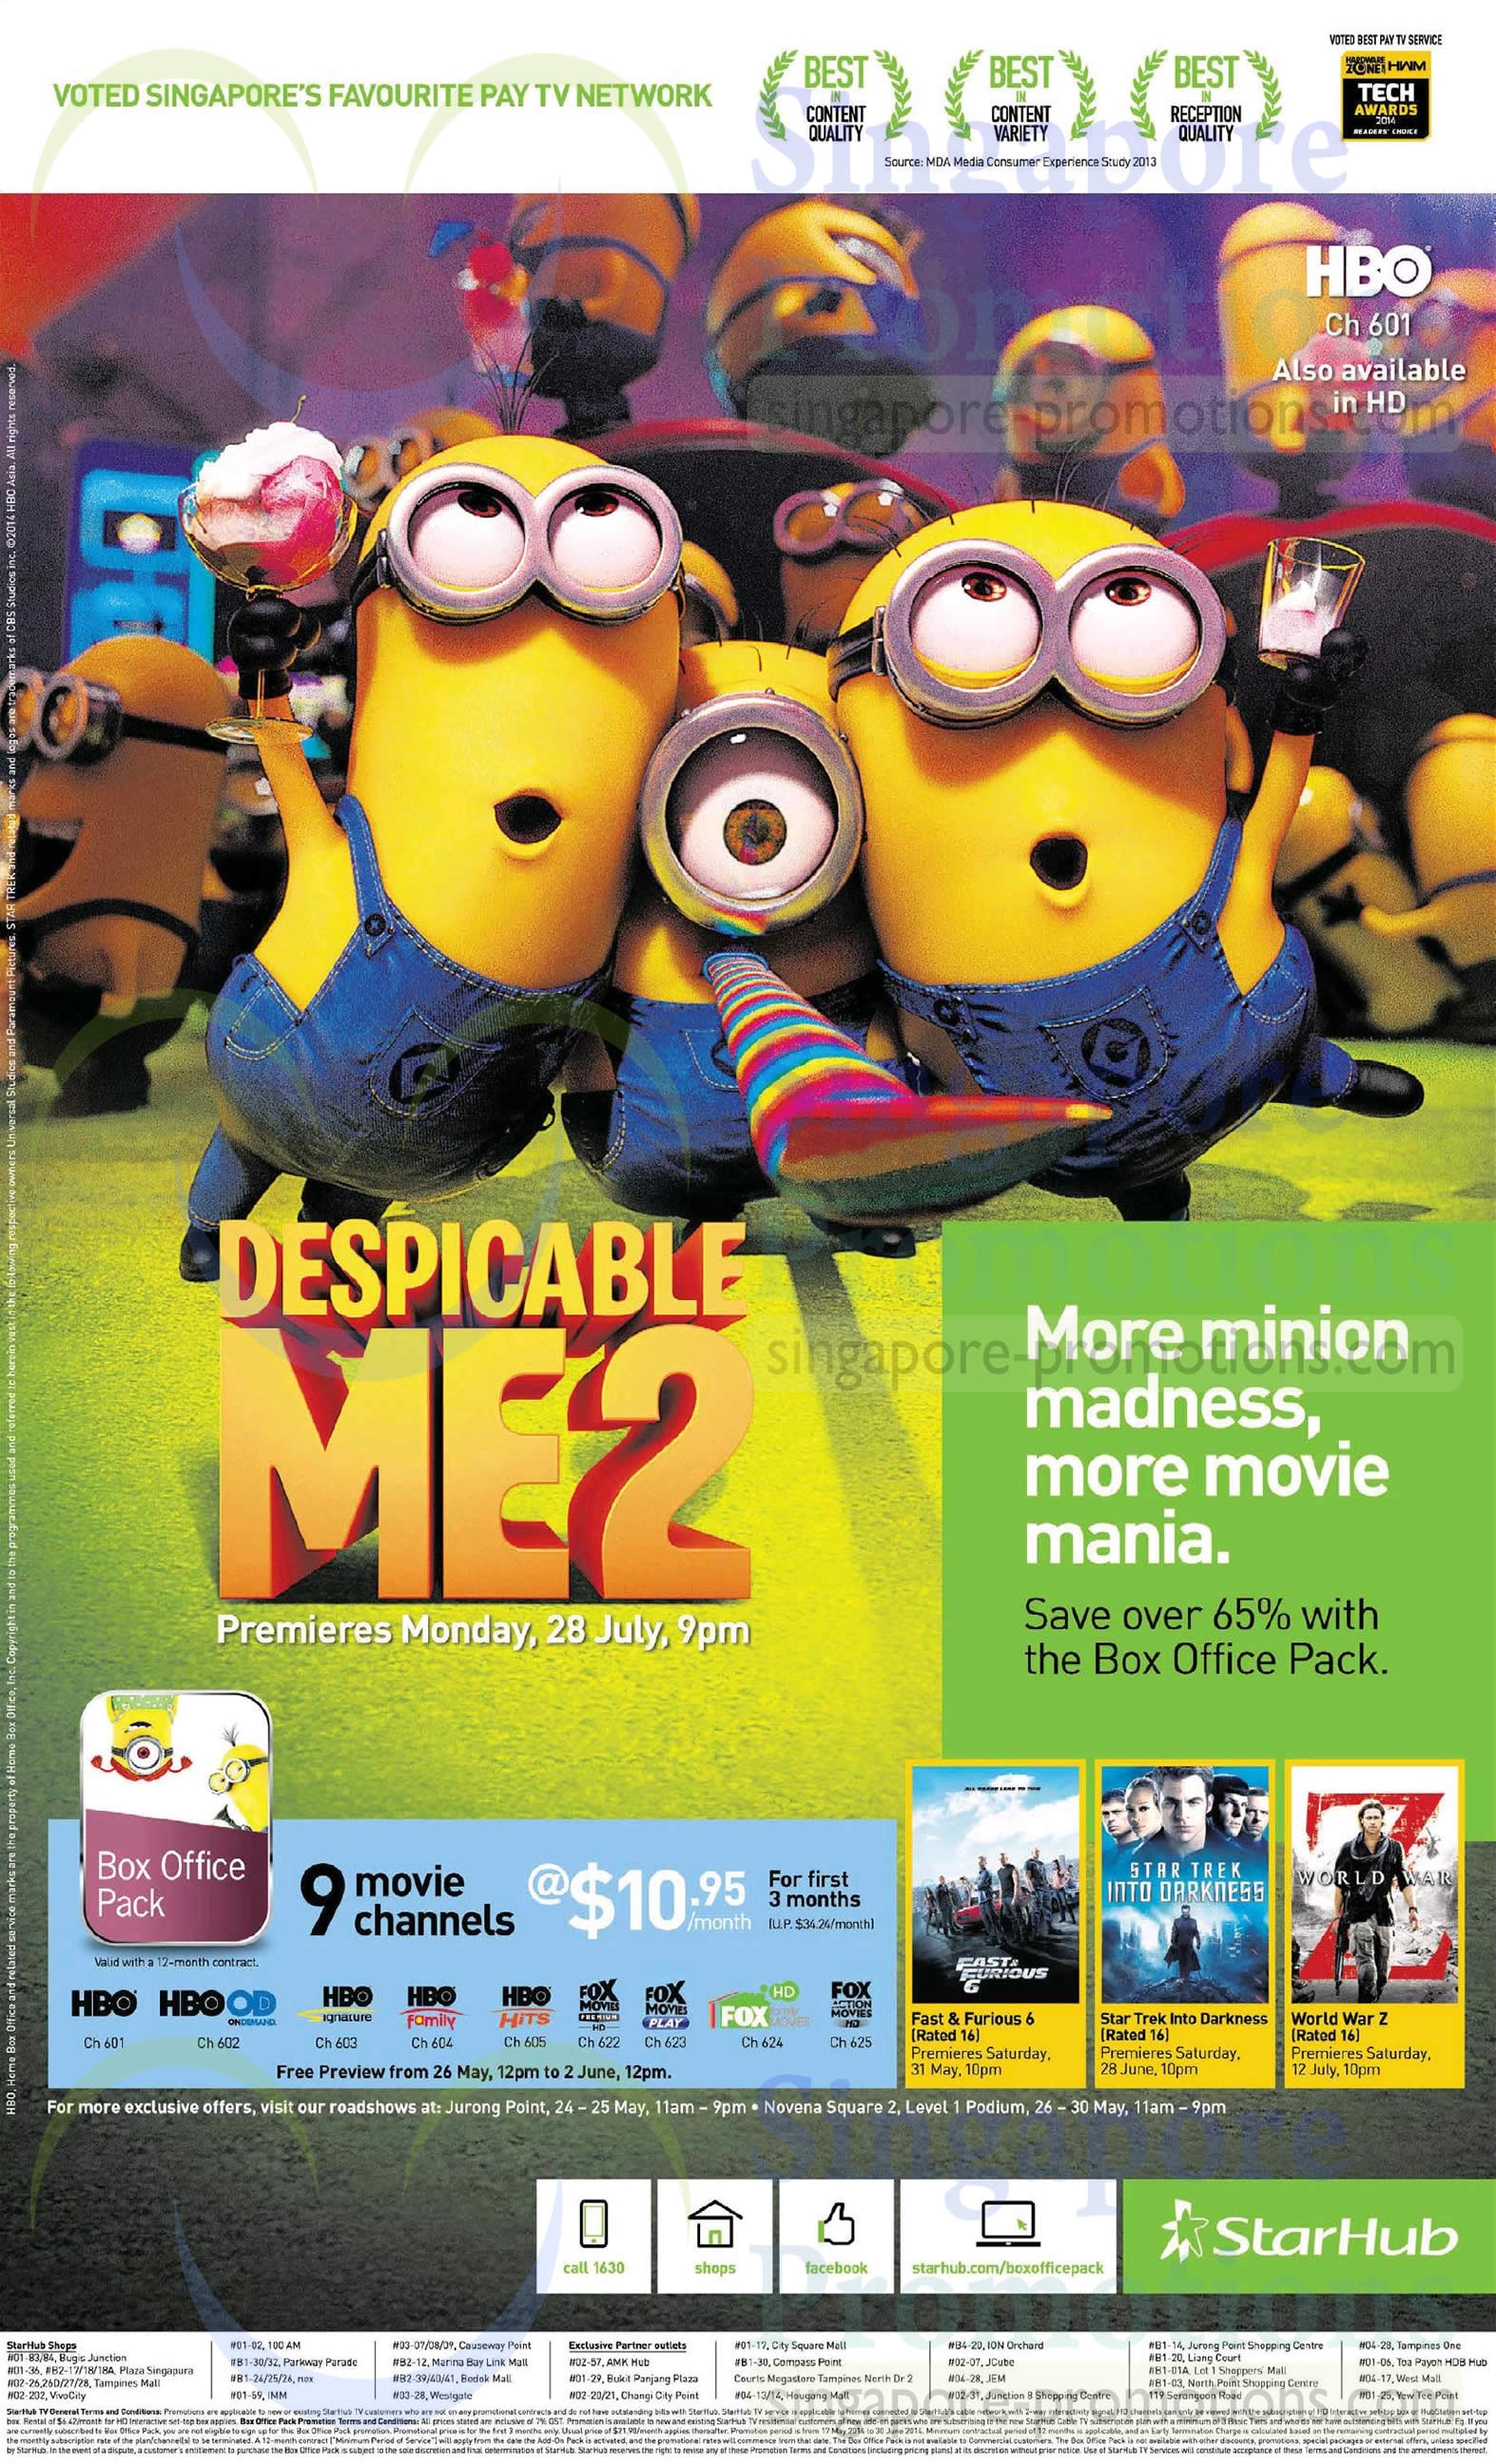 Cable TV Box Office Pack, Despicable Me 2